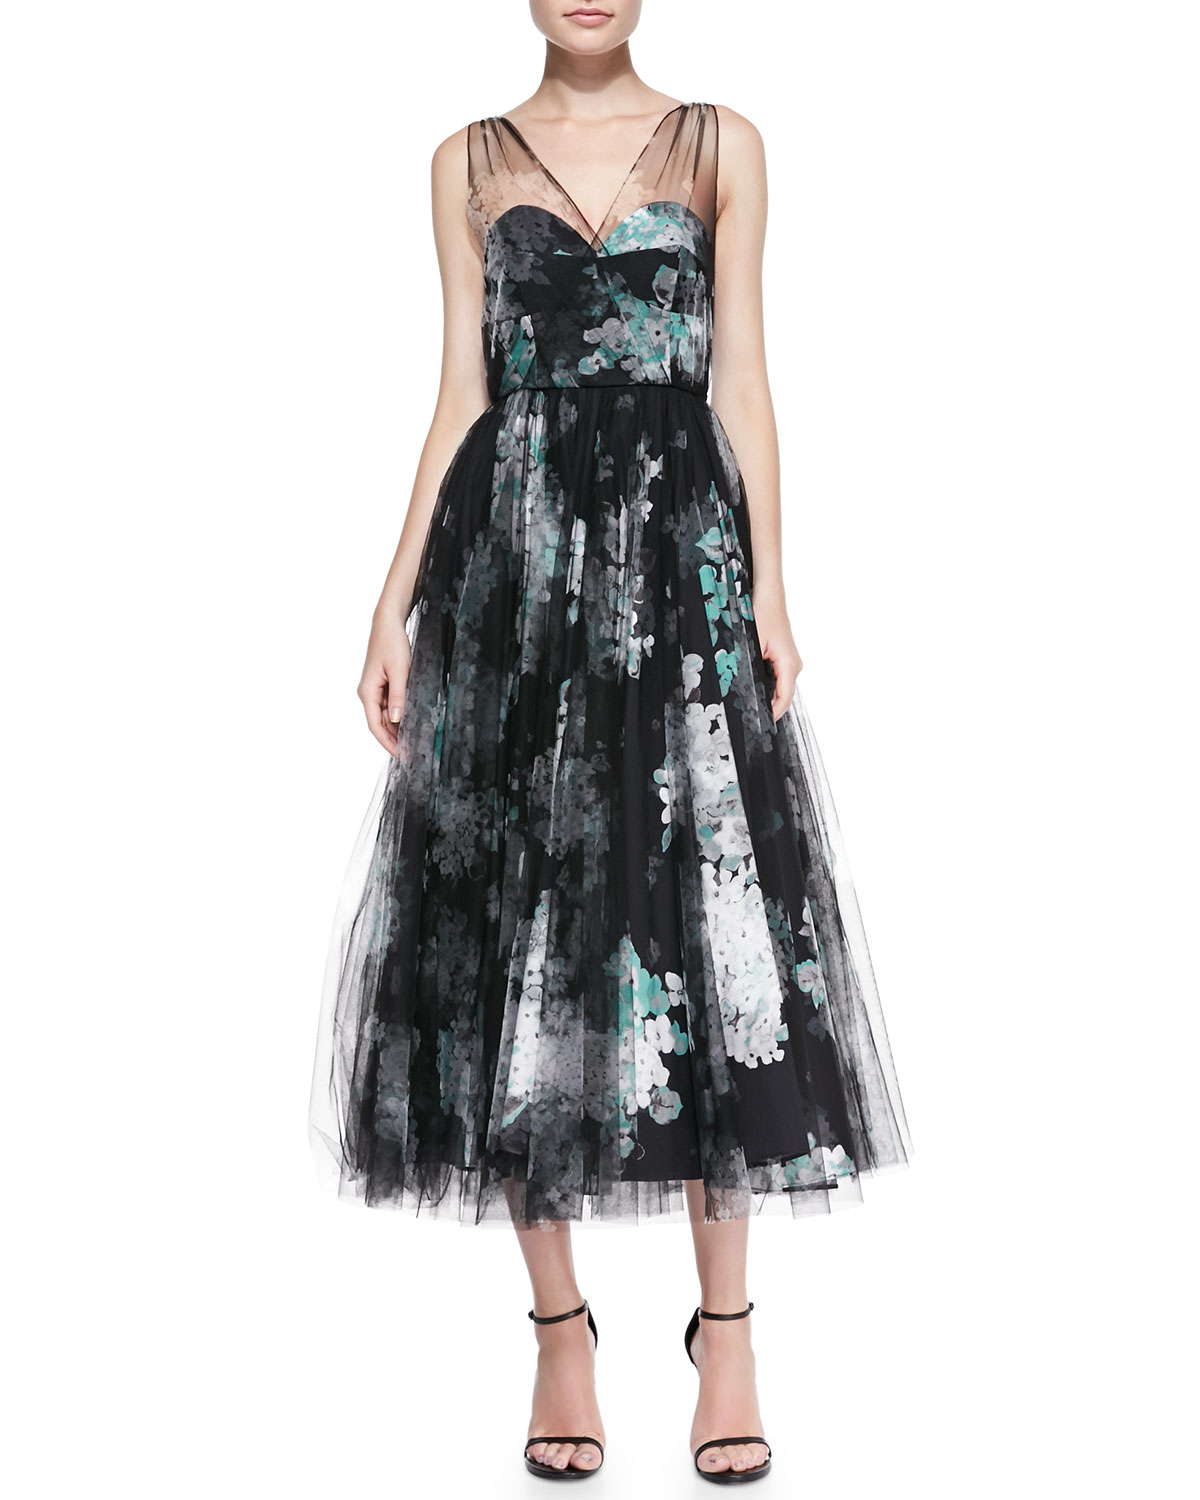 Lyst - Milly Natalie Pop Art Floral Cocktail Dress in Black